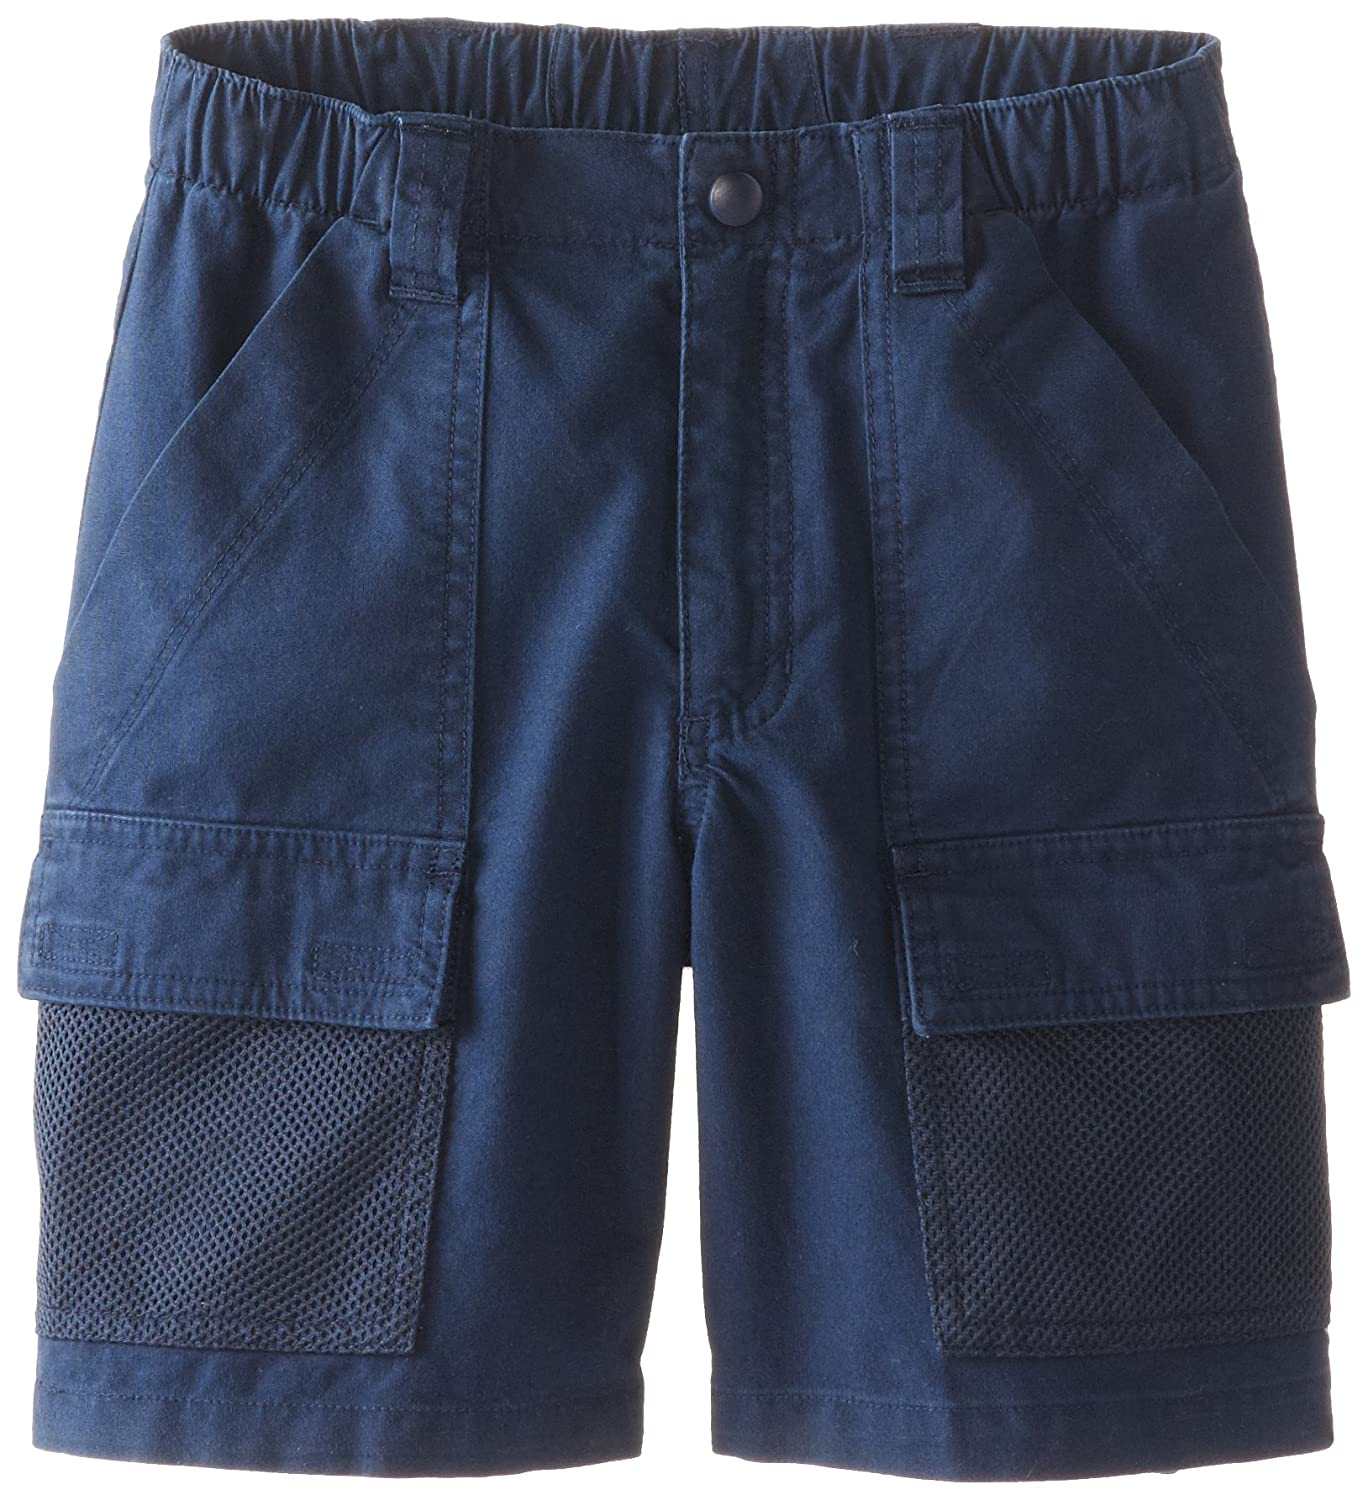 Columbia Sportswear Boy's Half Moon Shorts (Youth) 1527901464-464